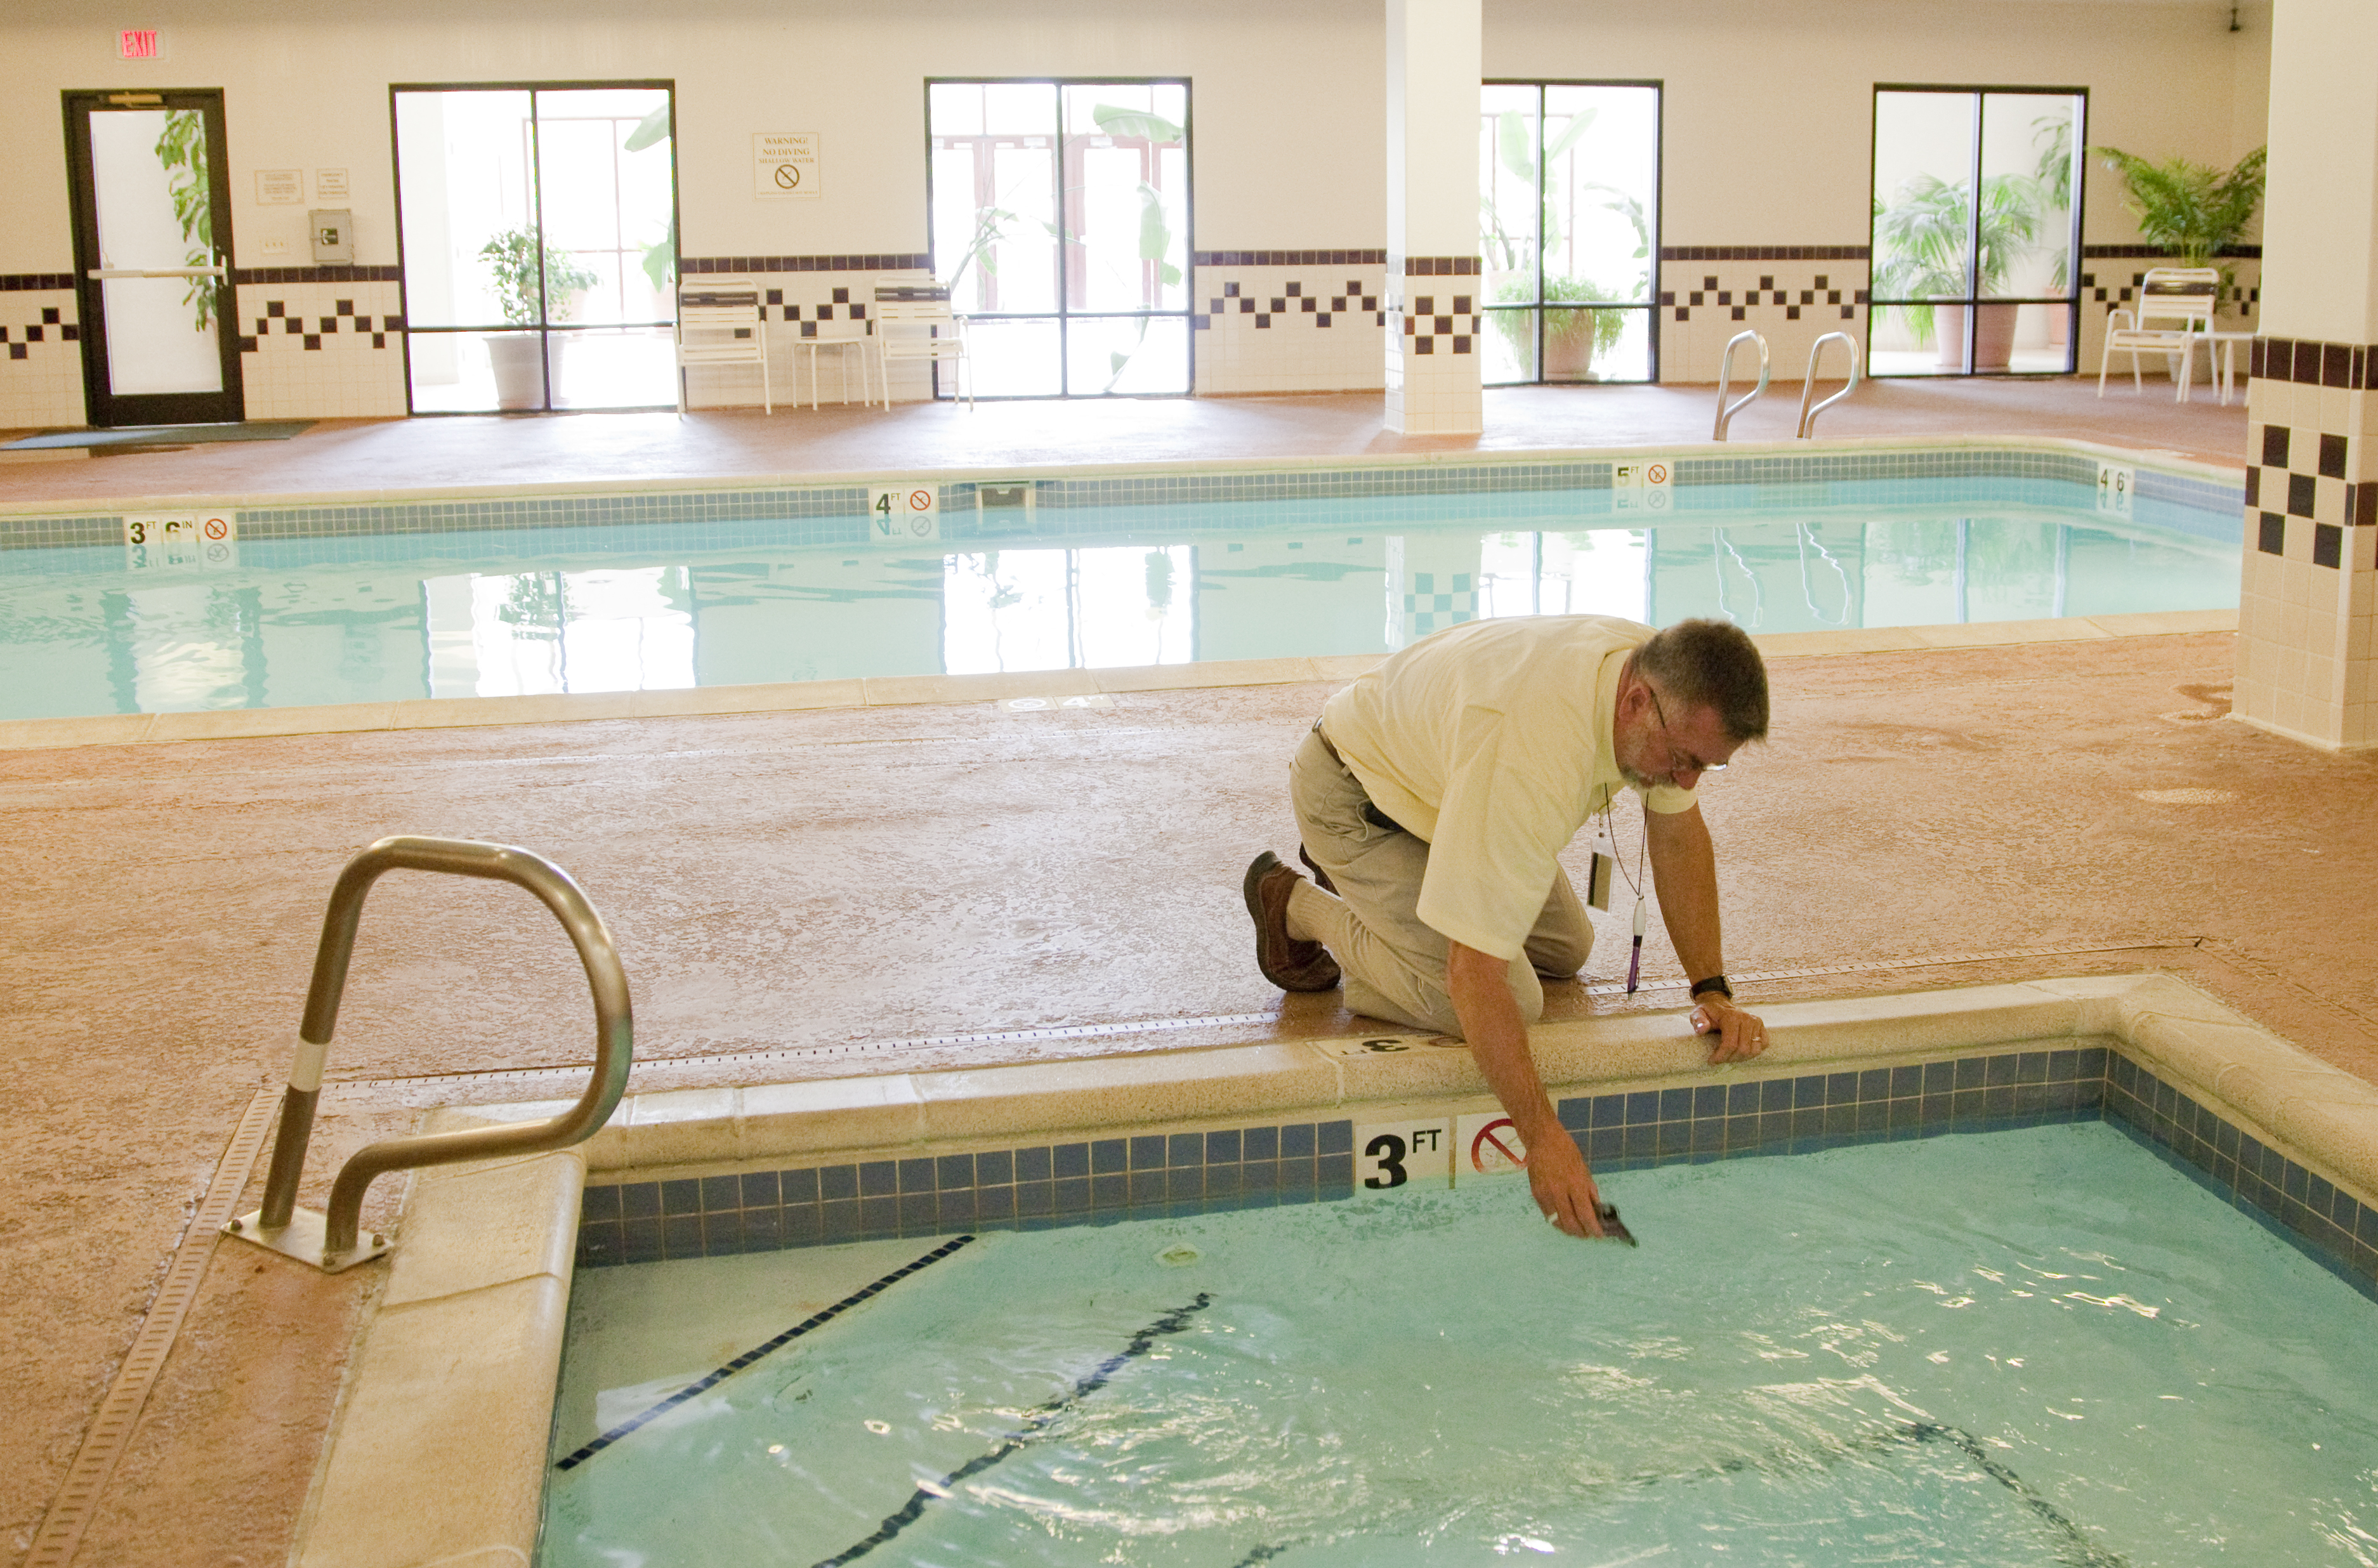 pools spend thousands on drain safety to comply with federal regulations news sports jobs